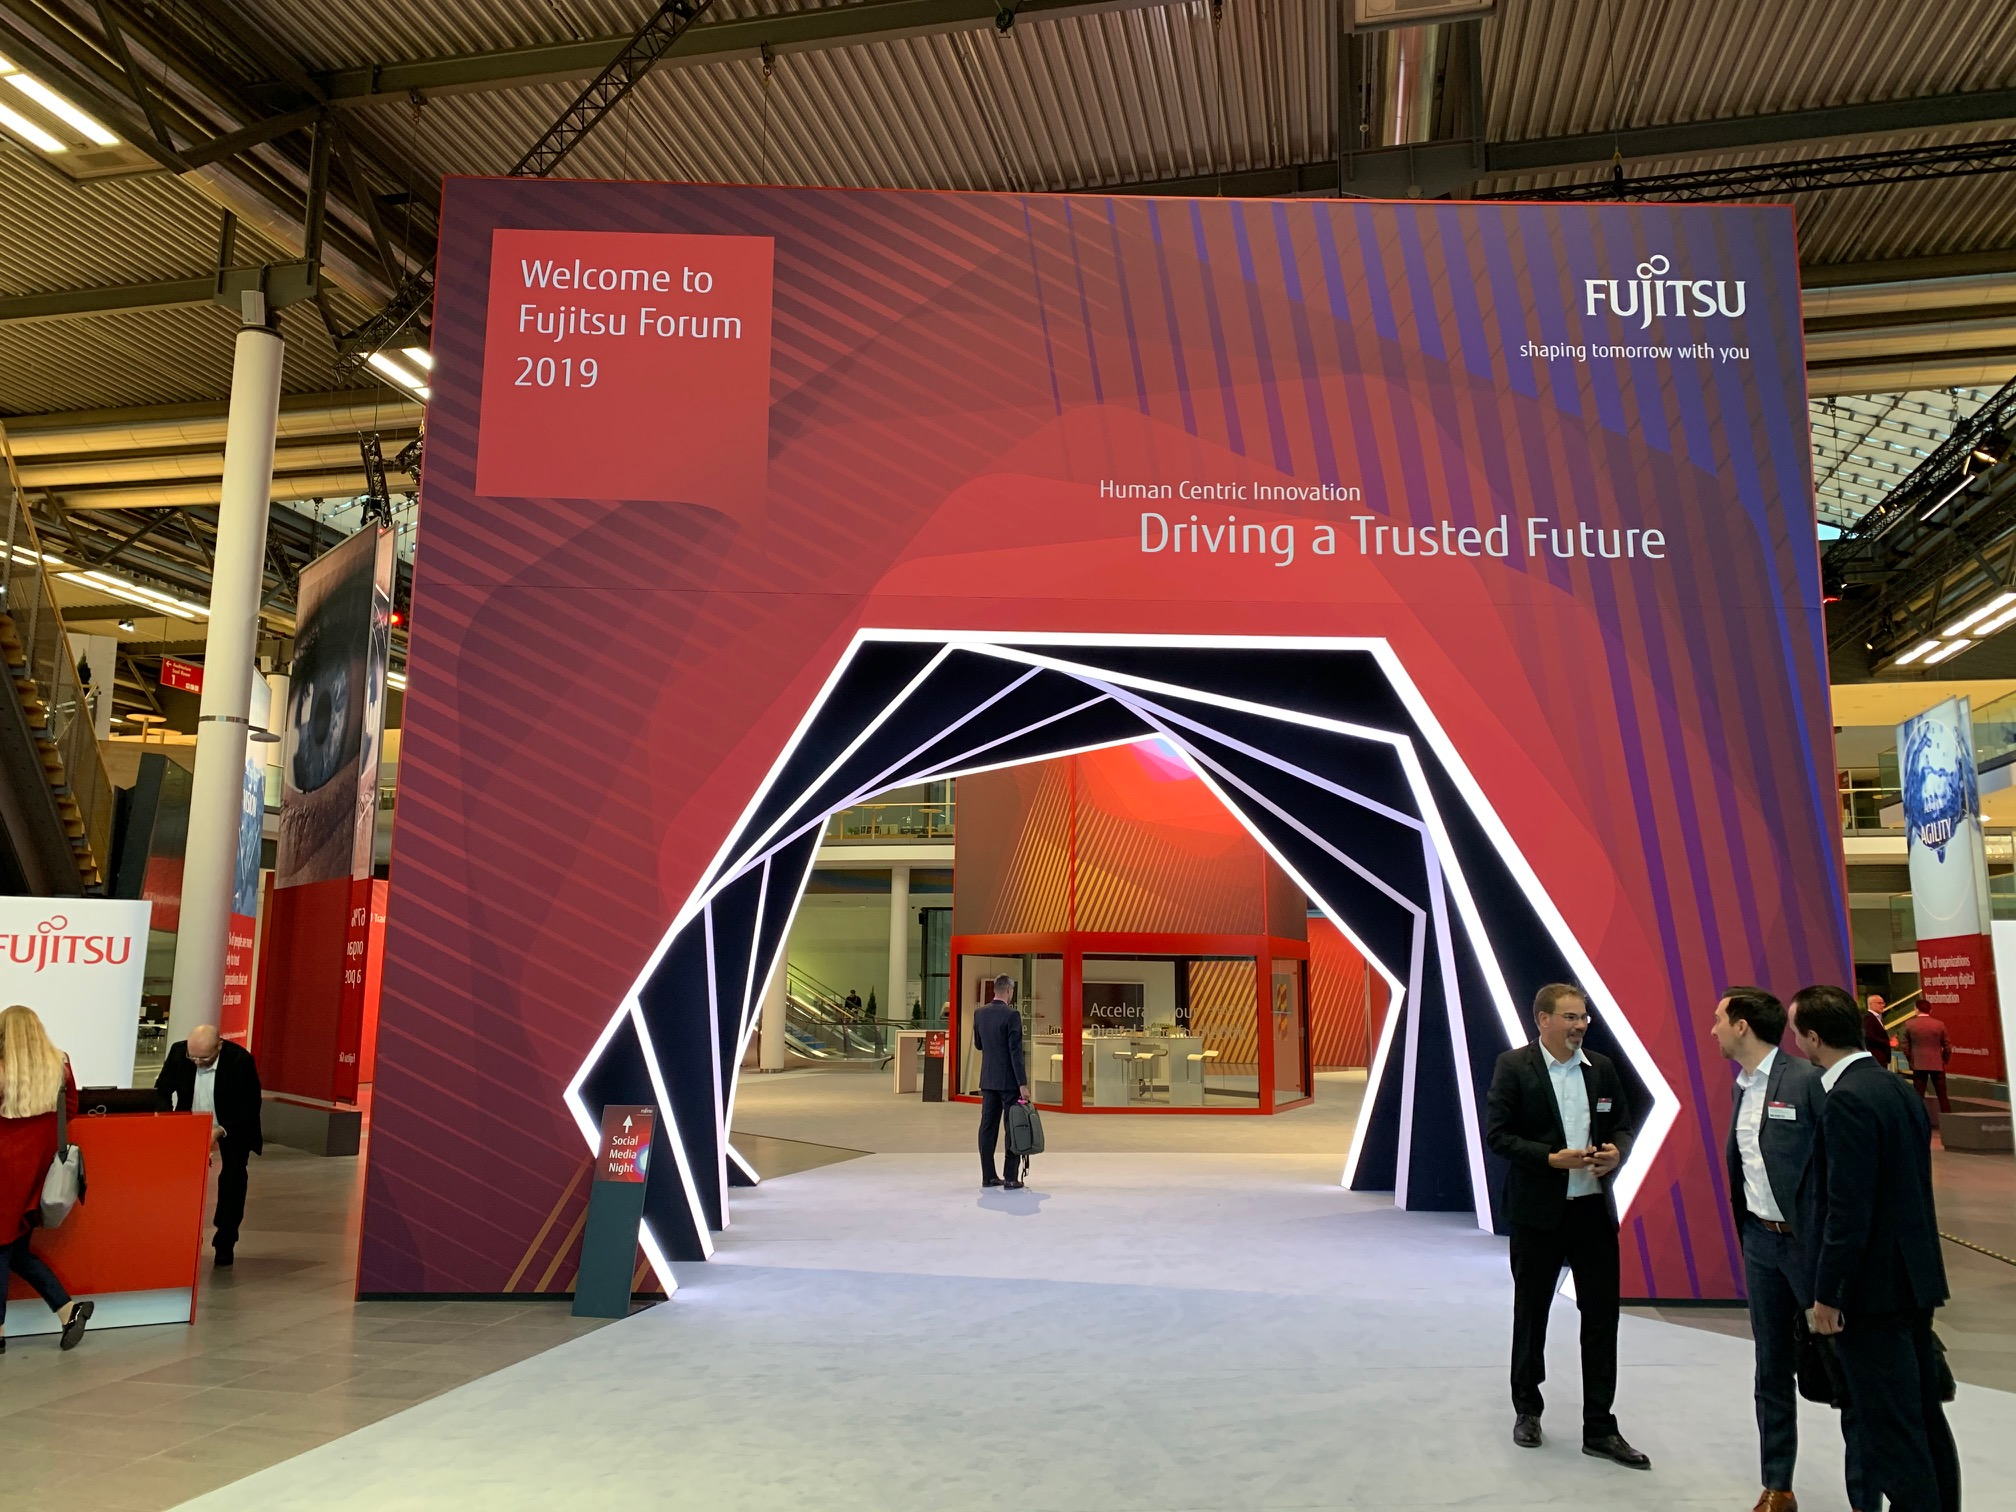 Main visual : What to look out for at Fujitsu Forum Munich